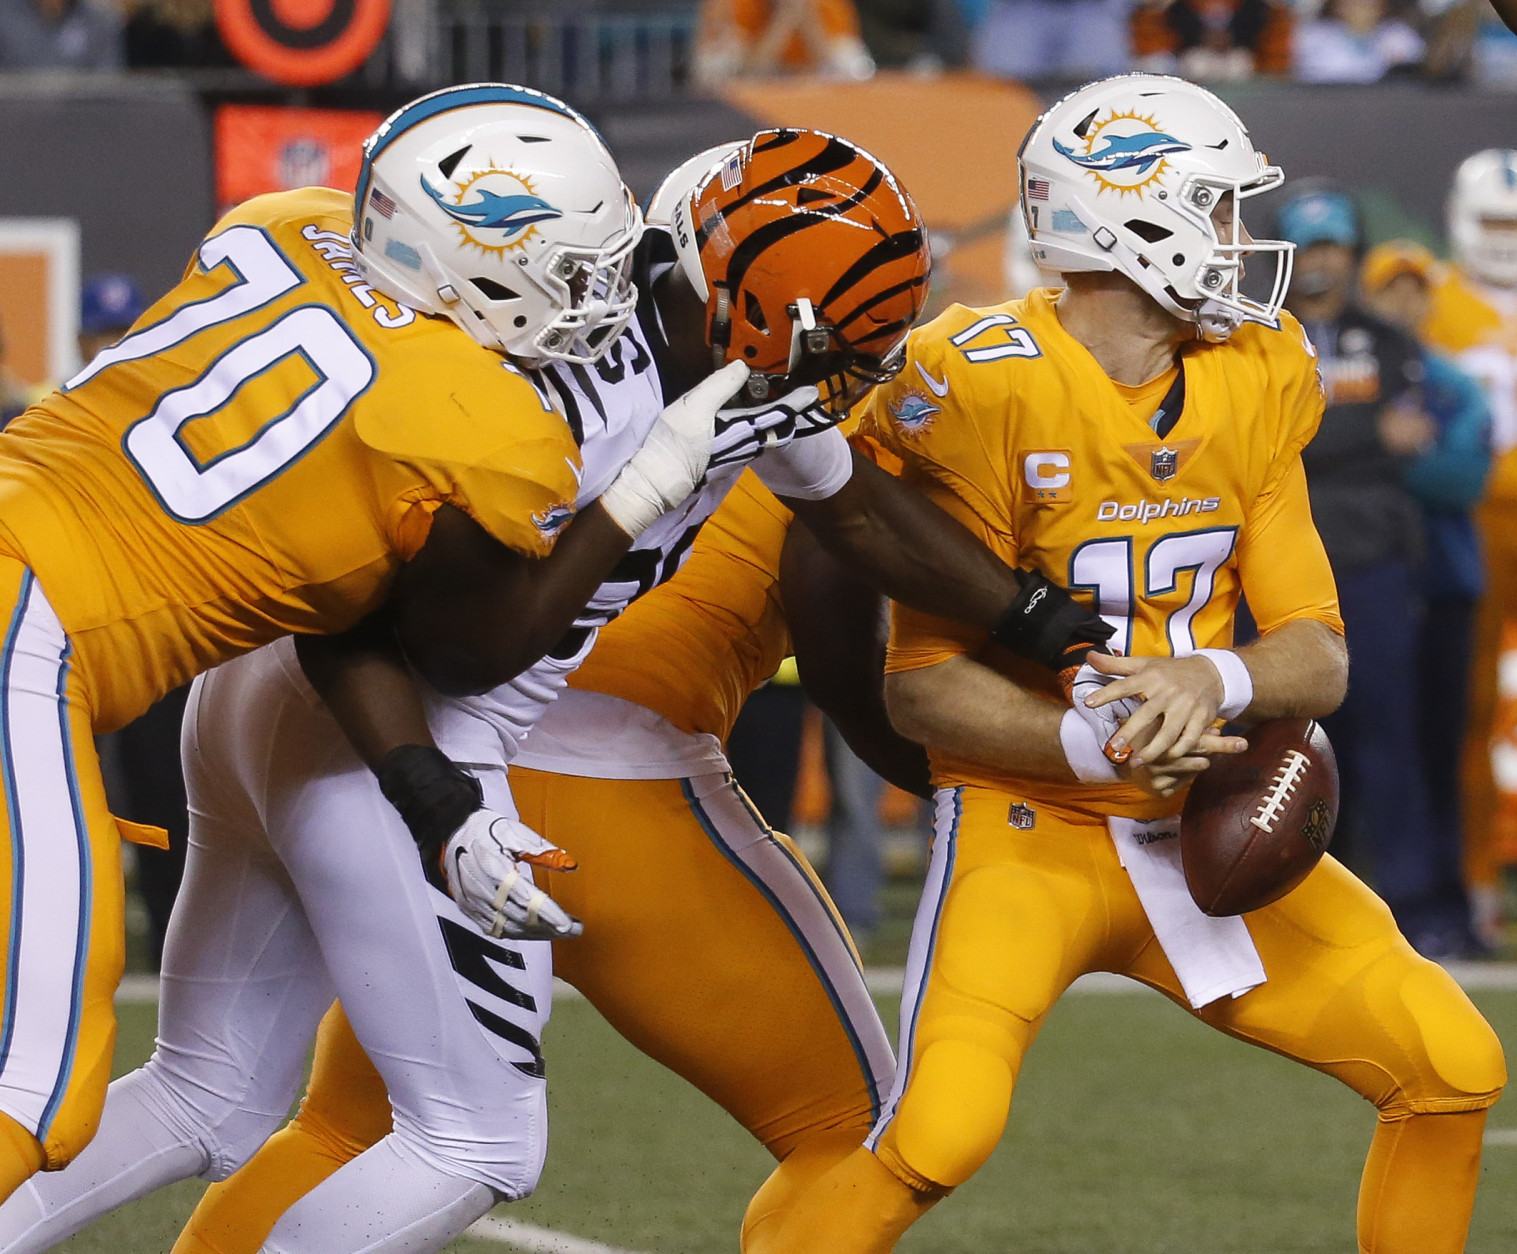 Cincinnati Bengals defensive end Carlos Dunlap, second from left, forces a fumble by Miami Dolphins quarterback Ryan Tannehill, center, in the first half of an NFL football game, Thursday, Sept. 29, 2016, in Cincinnati. The Bengals recovered the fumble. (AP Photo/Frank Victores)